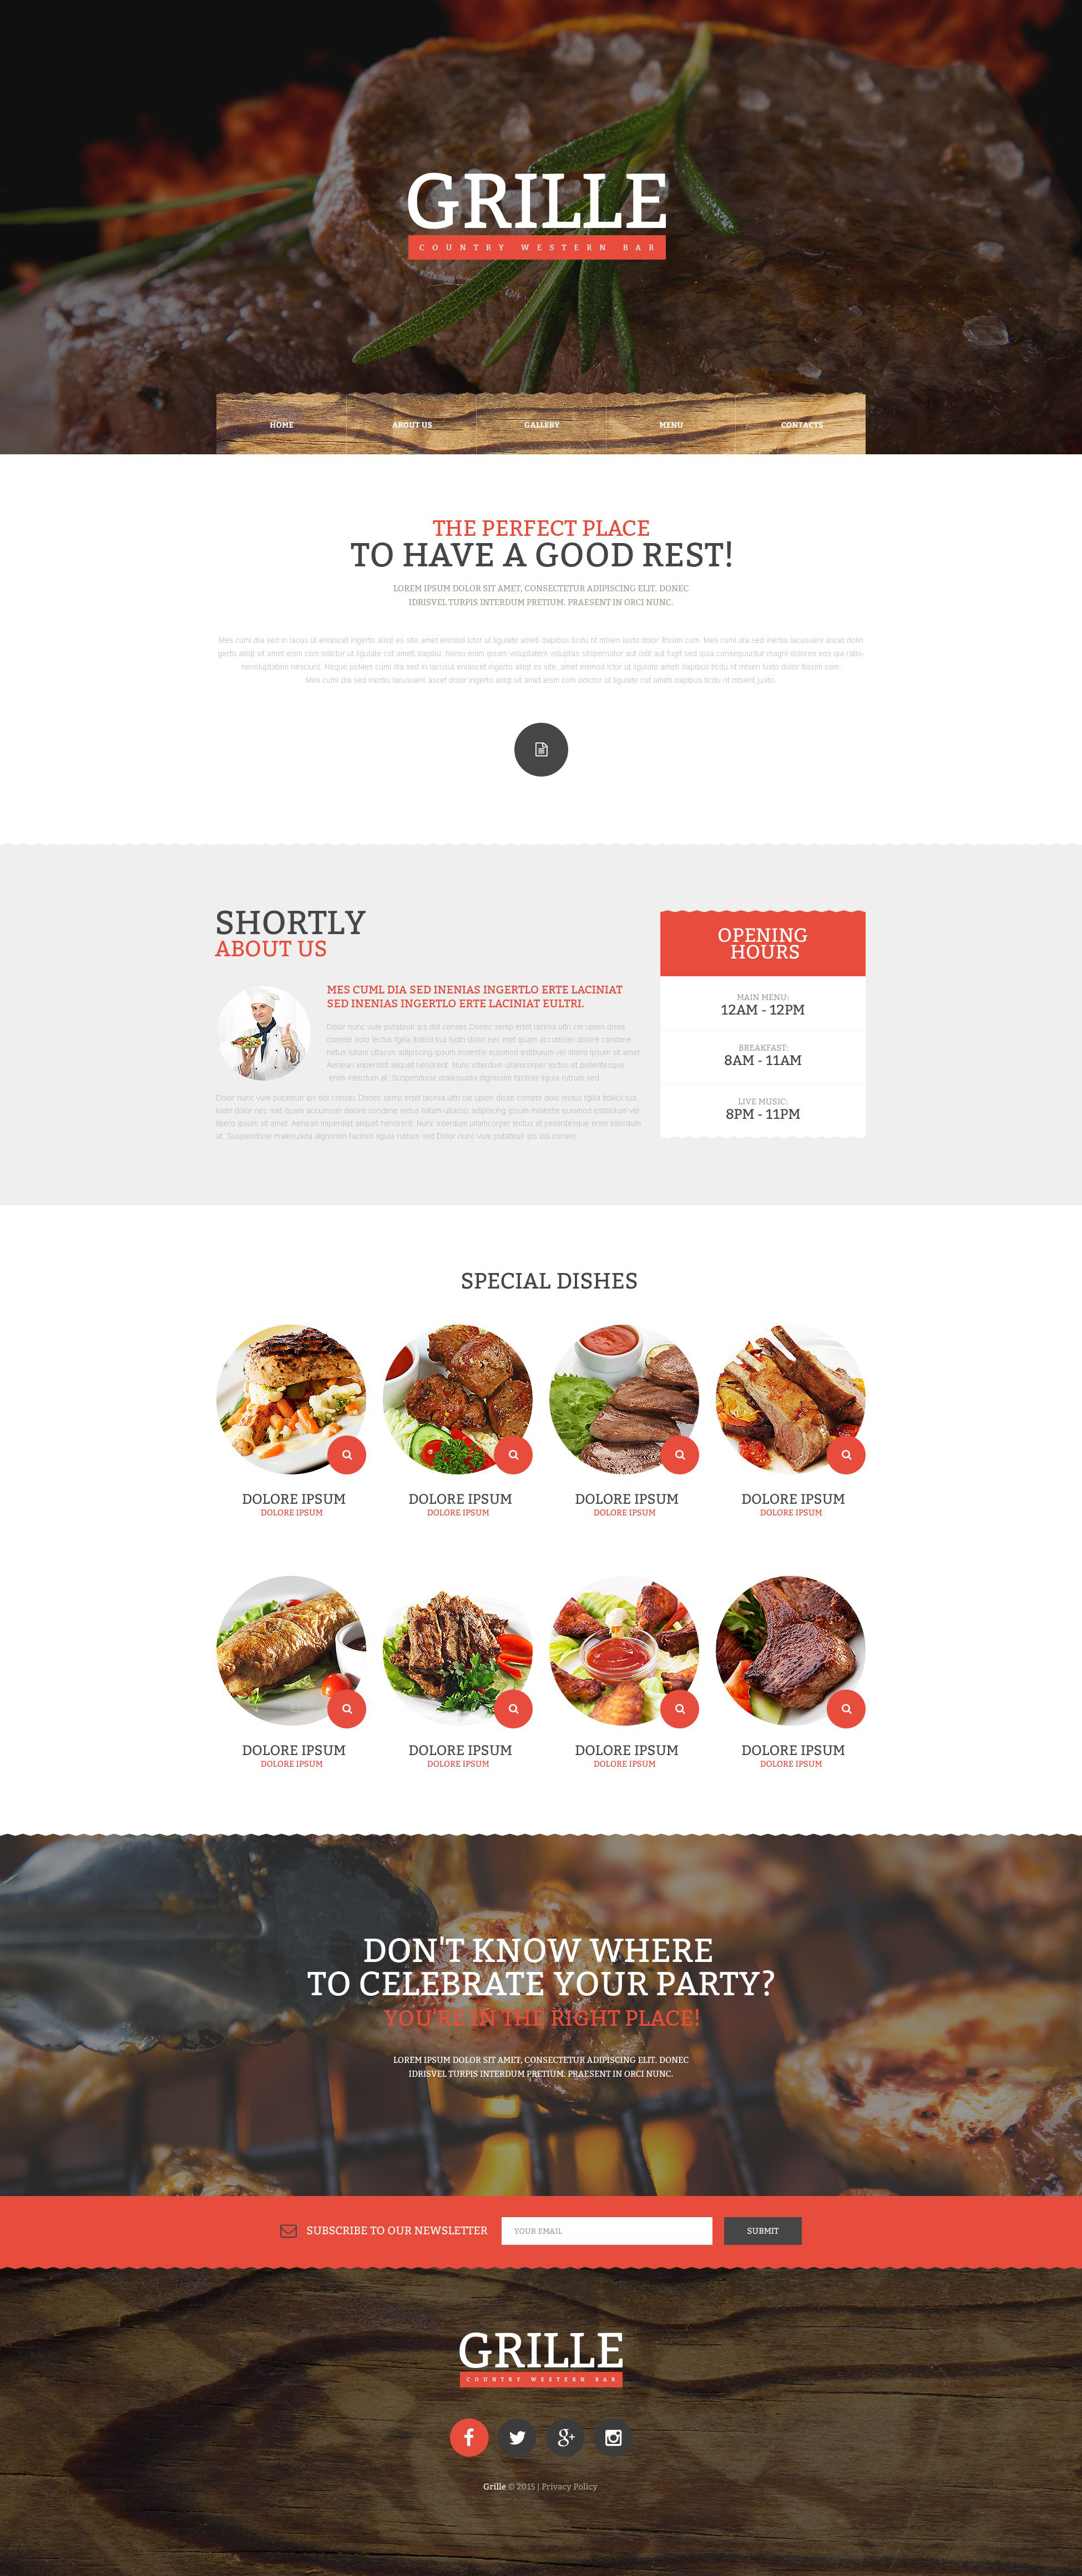 The Grille BBQ House Restaurant Bootstrap Design 53861, one of the best website templates of its kind (cafe and restaurant, most popular), also known as grille BBQ House restaurant website template, meat website template, beef website template, pork website template, chicken website template, roast website template, barbecue website template, grill website template, meal website template, snack website template, food website template, brisket website template, shoulder website template, steak and related with grille BBQ House restaurant, meat, beef, pork, chicken, roast, barbecue, grill, meal, snack, food, brisket, shoulder, steak, etc.